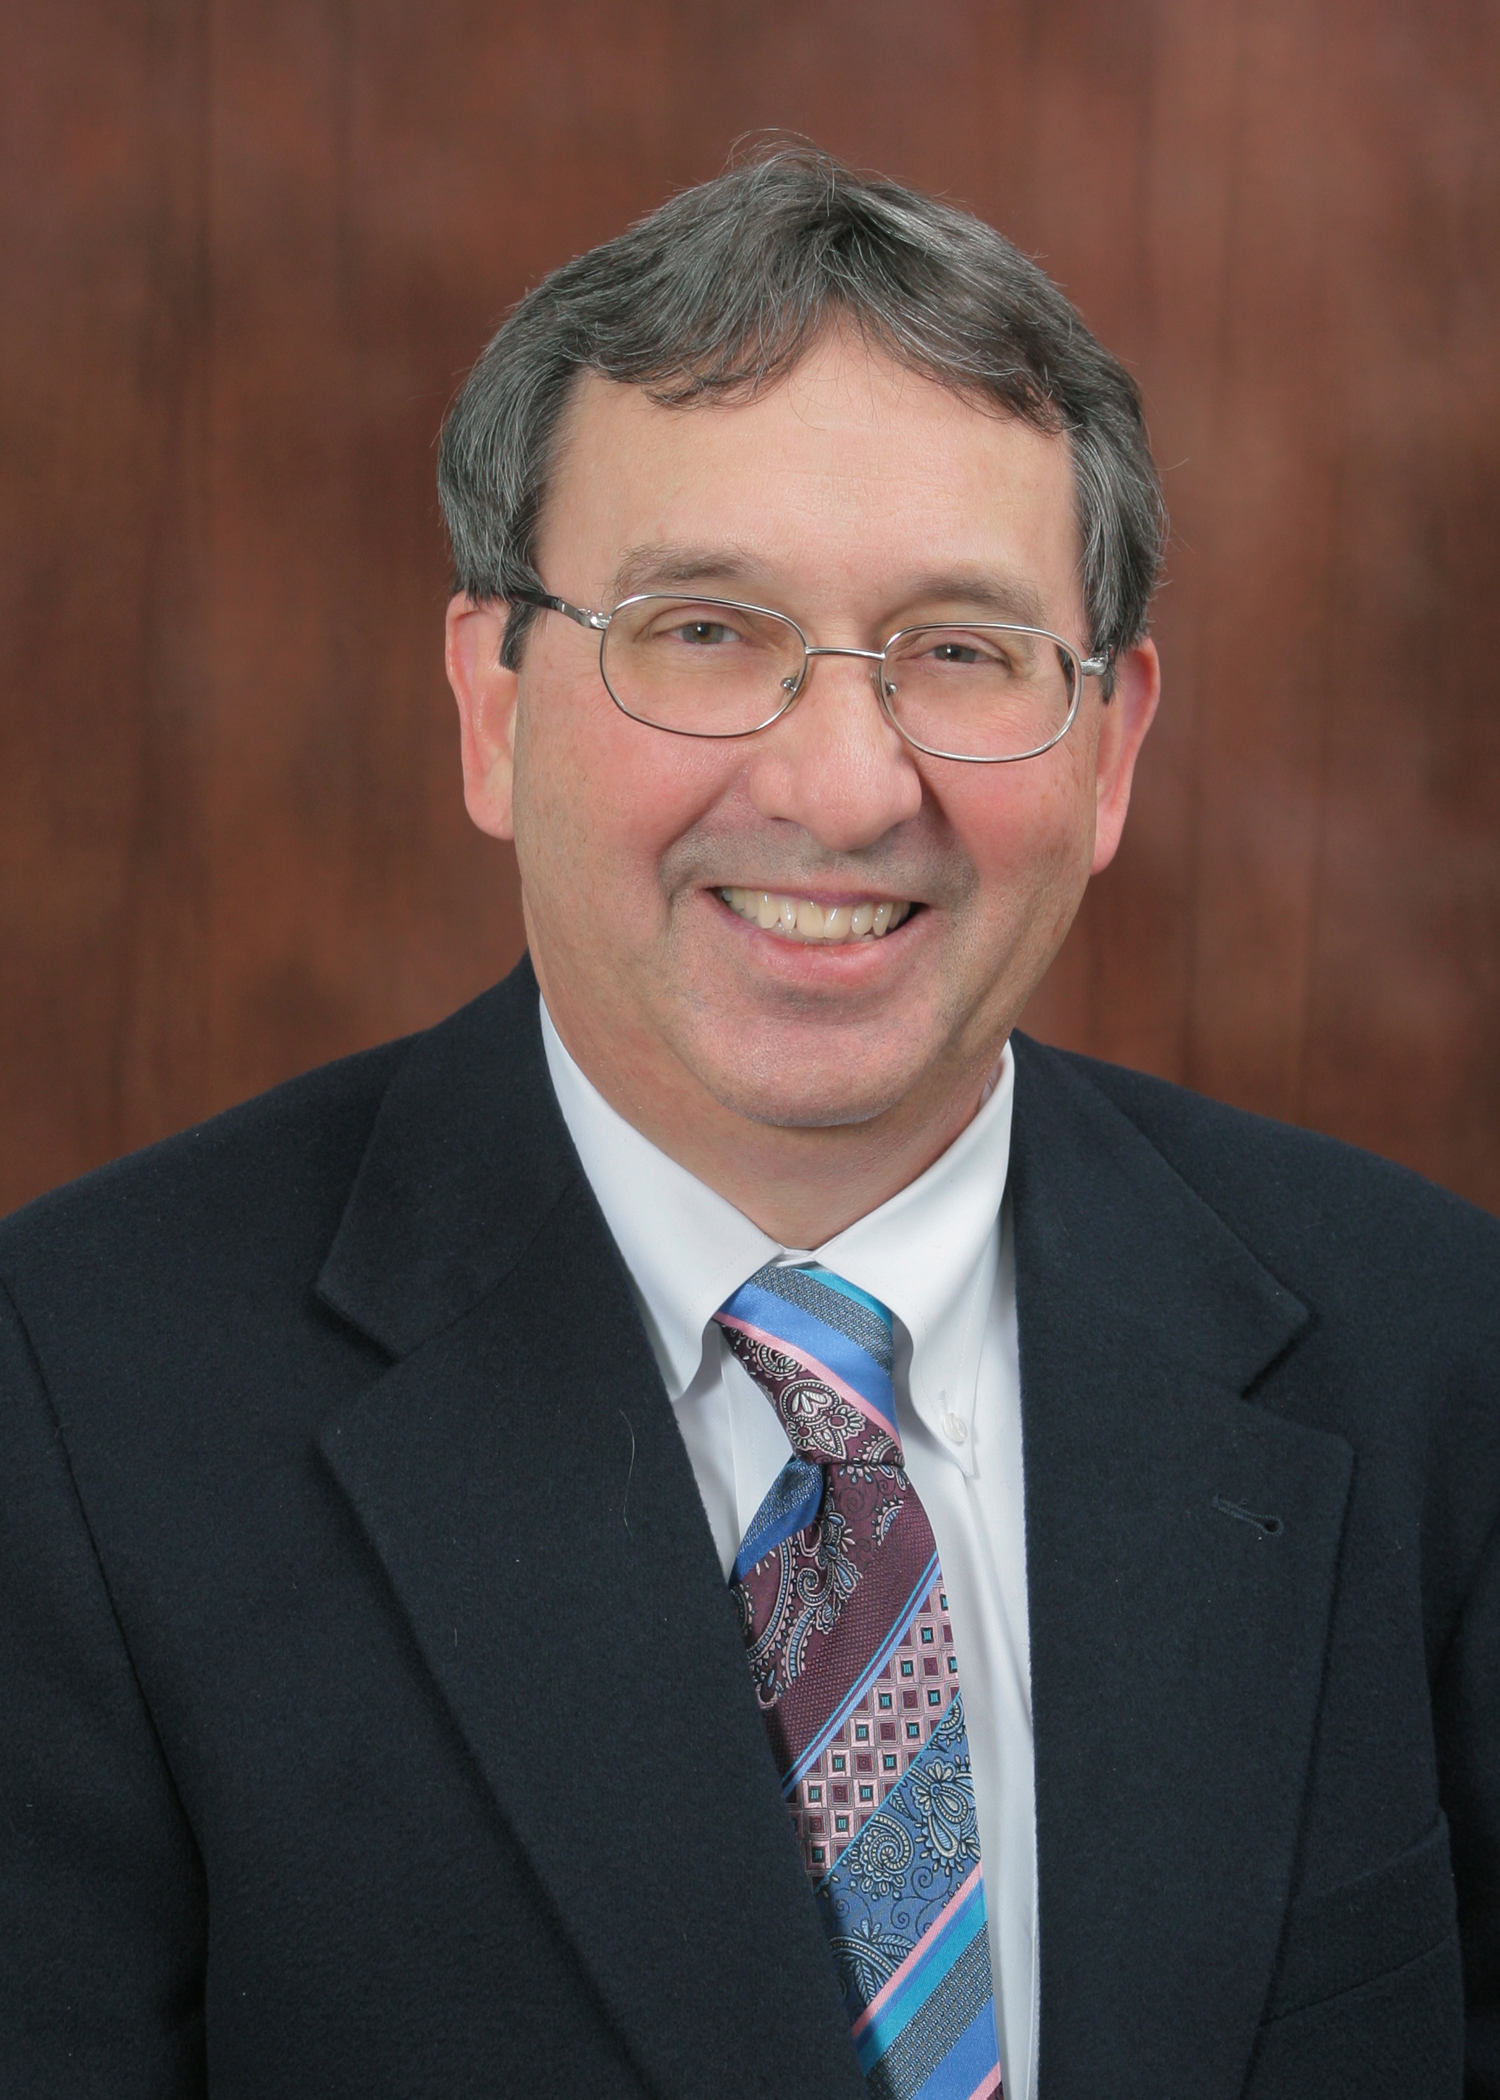 Lowell A. Yates, CPA